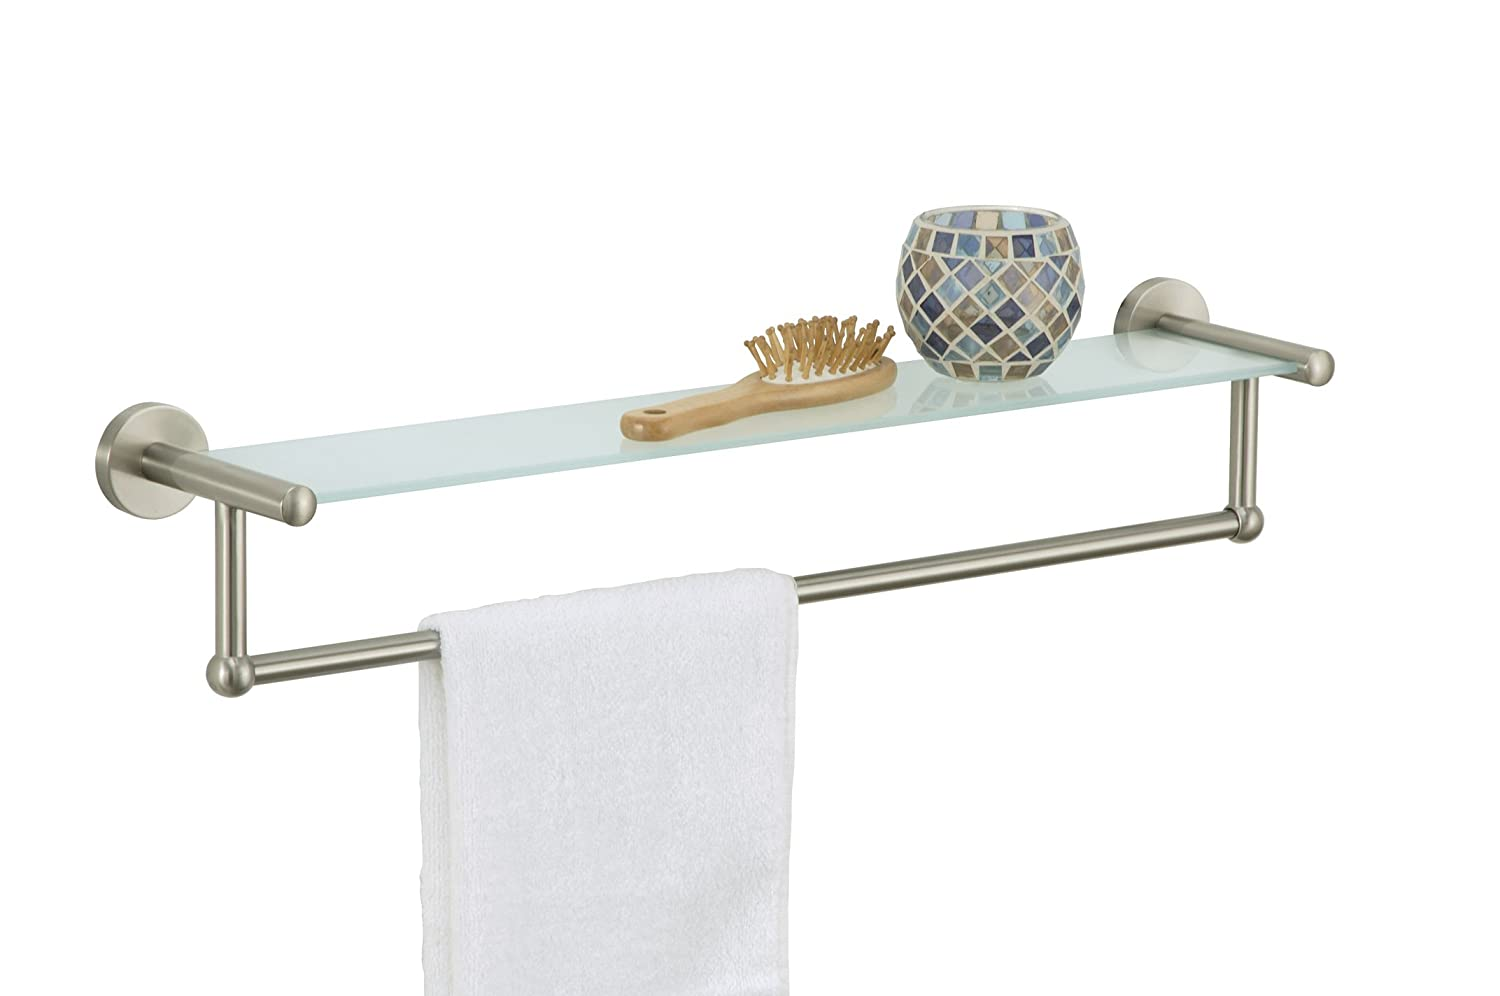 Amazon.com Organize It All Satin Nickel Glass Shelf with Towel Bar Home u0026 Kitchen  sc 1 st  Amazon.com : bathroom cabinets with towel bar - Cheerinfomania.Com